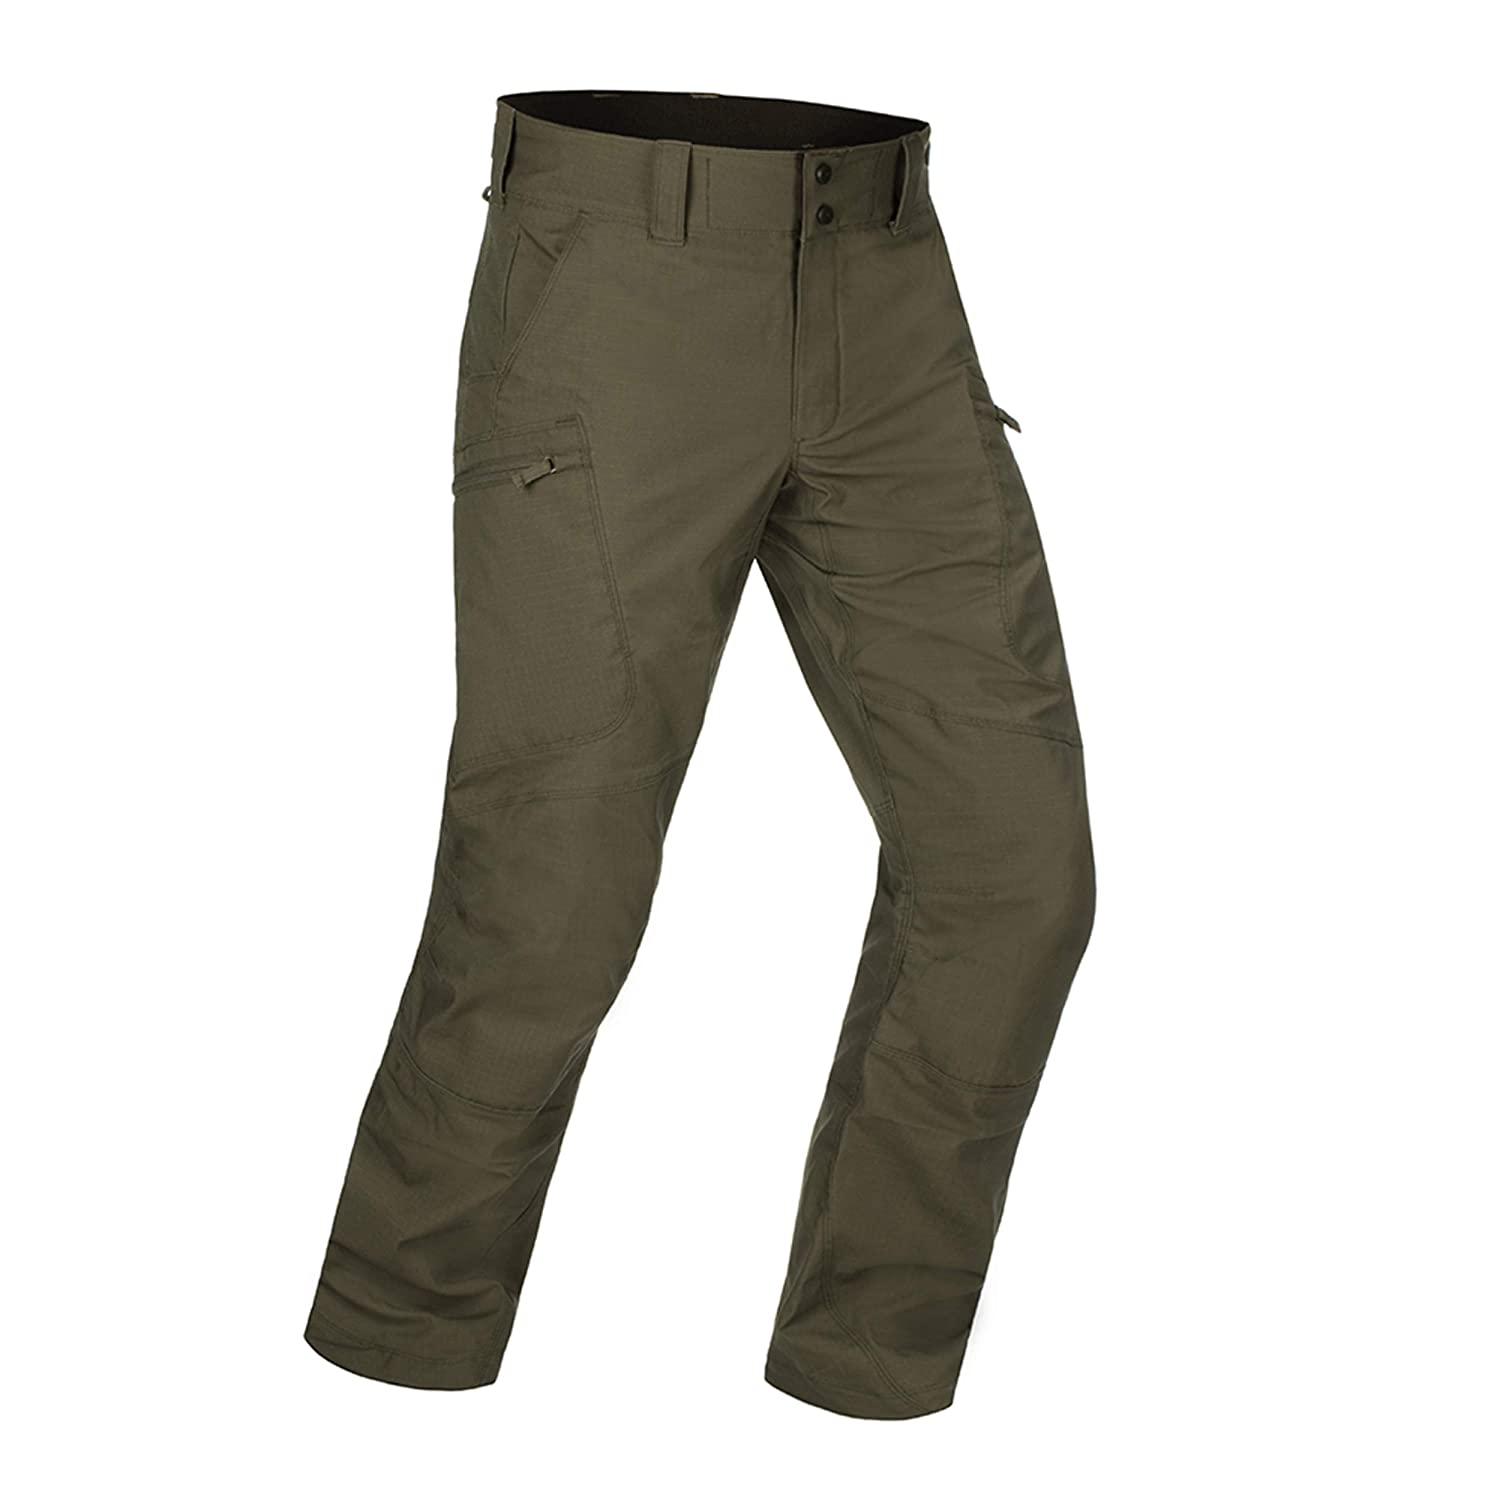 ClawGear RAL7013 Enforcer Flex Pantalon Tactique